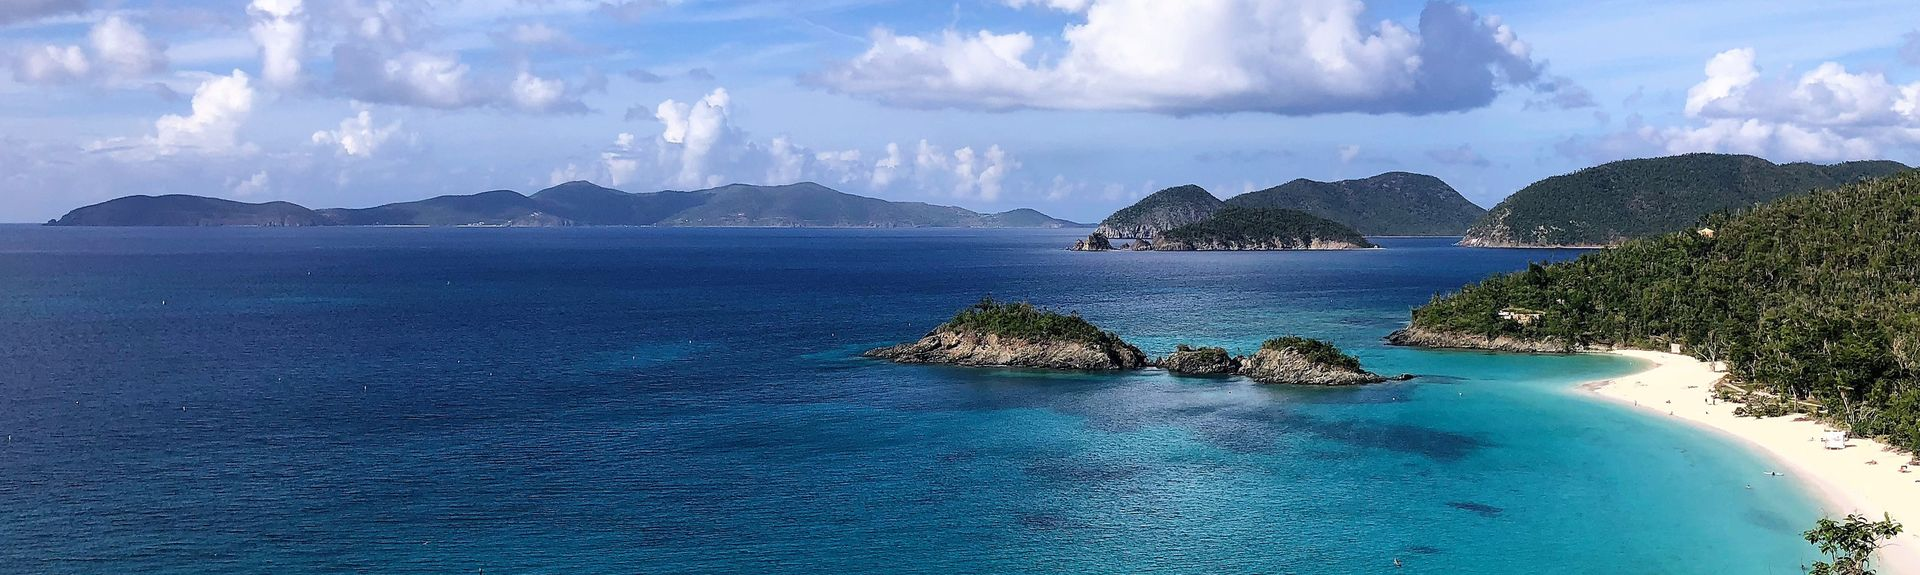 Estate Rendezvous and Ditlef, Saint John, US Virgin Islands